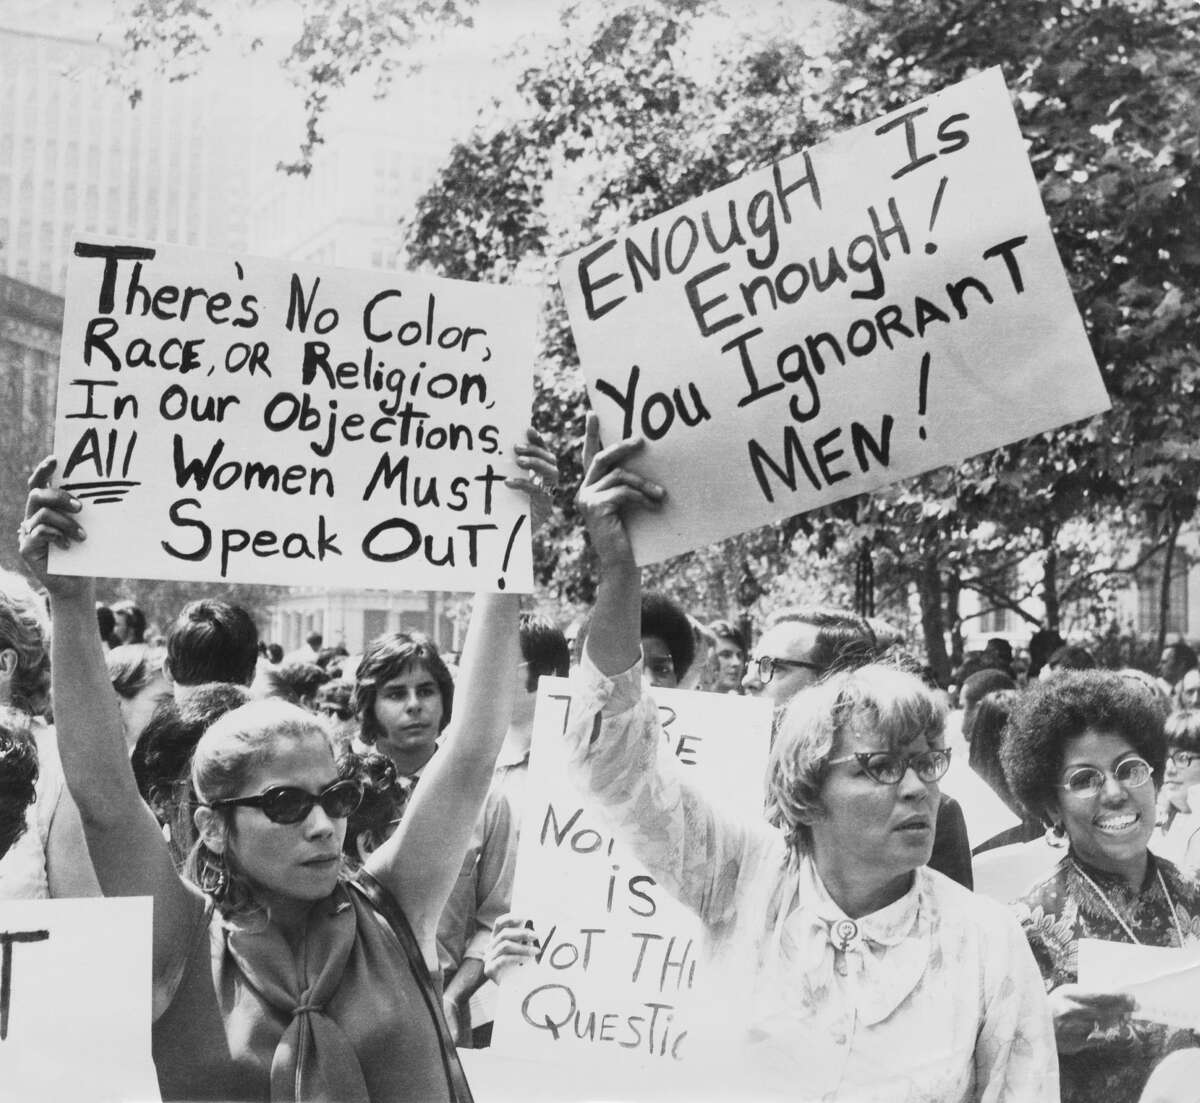 Women hold up signs demanding equal rights during a demonstration for women's liberation, New York City.